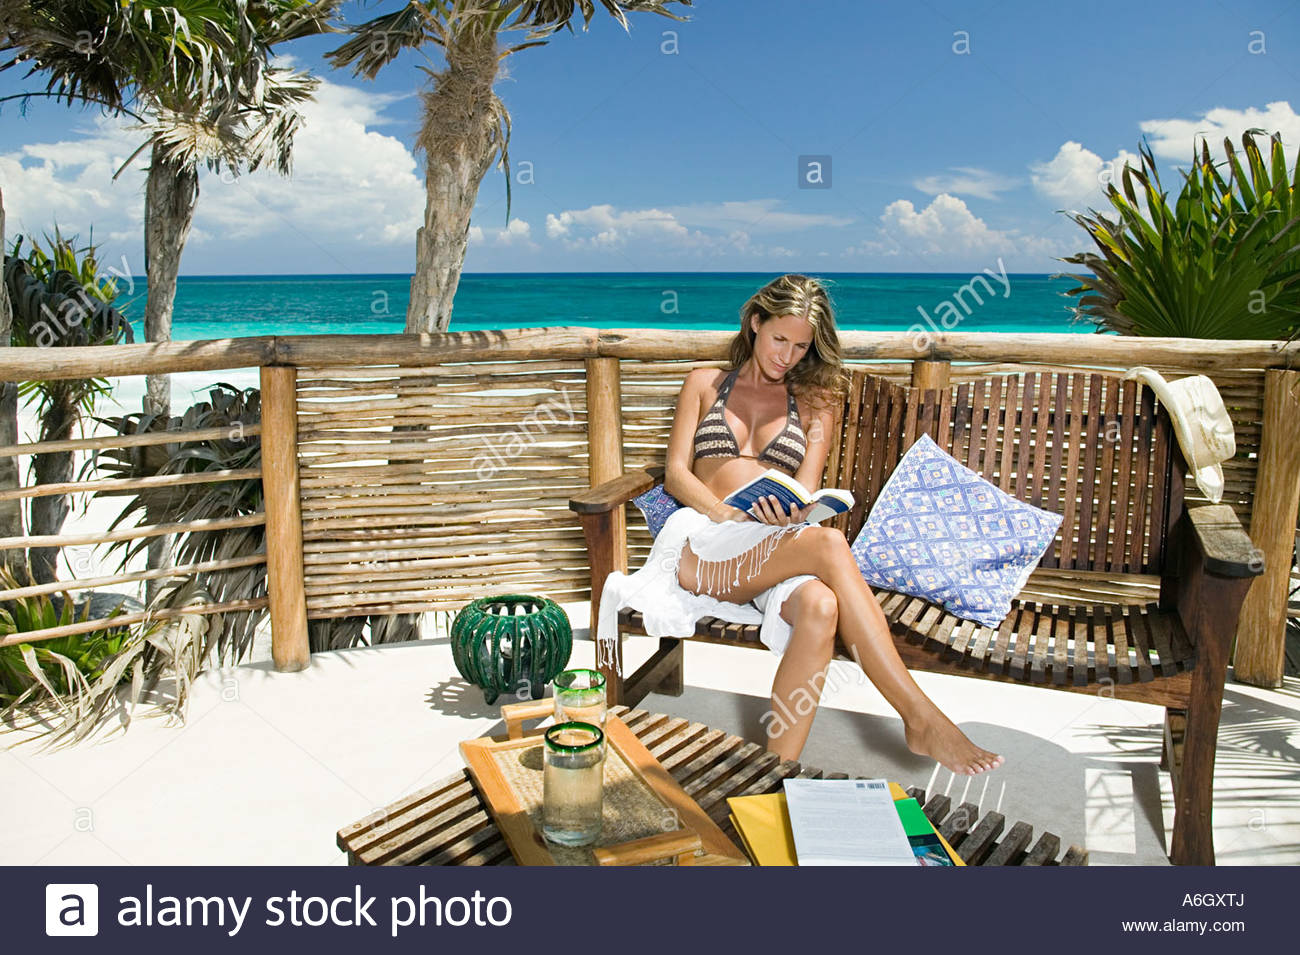 Woman reading a book by beach - Stock Image